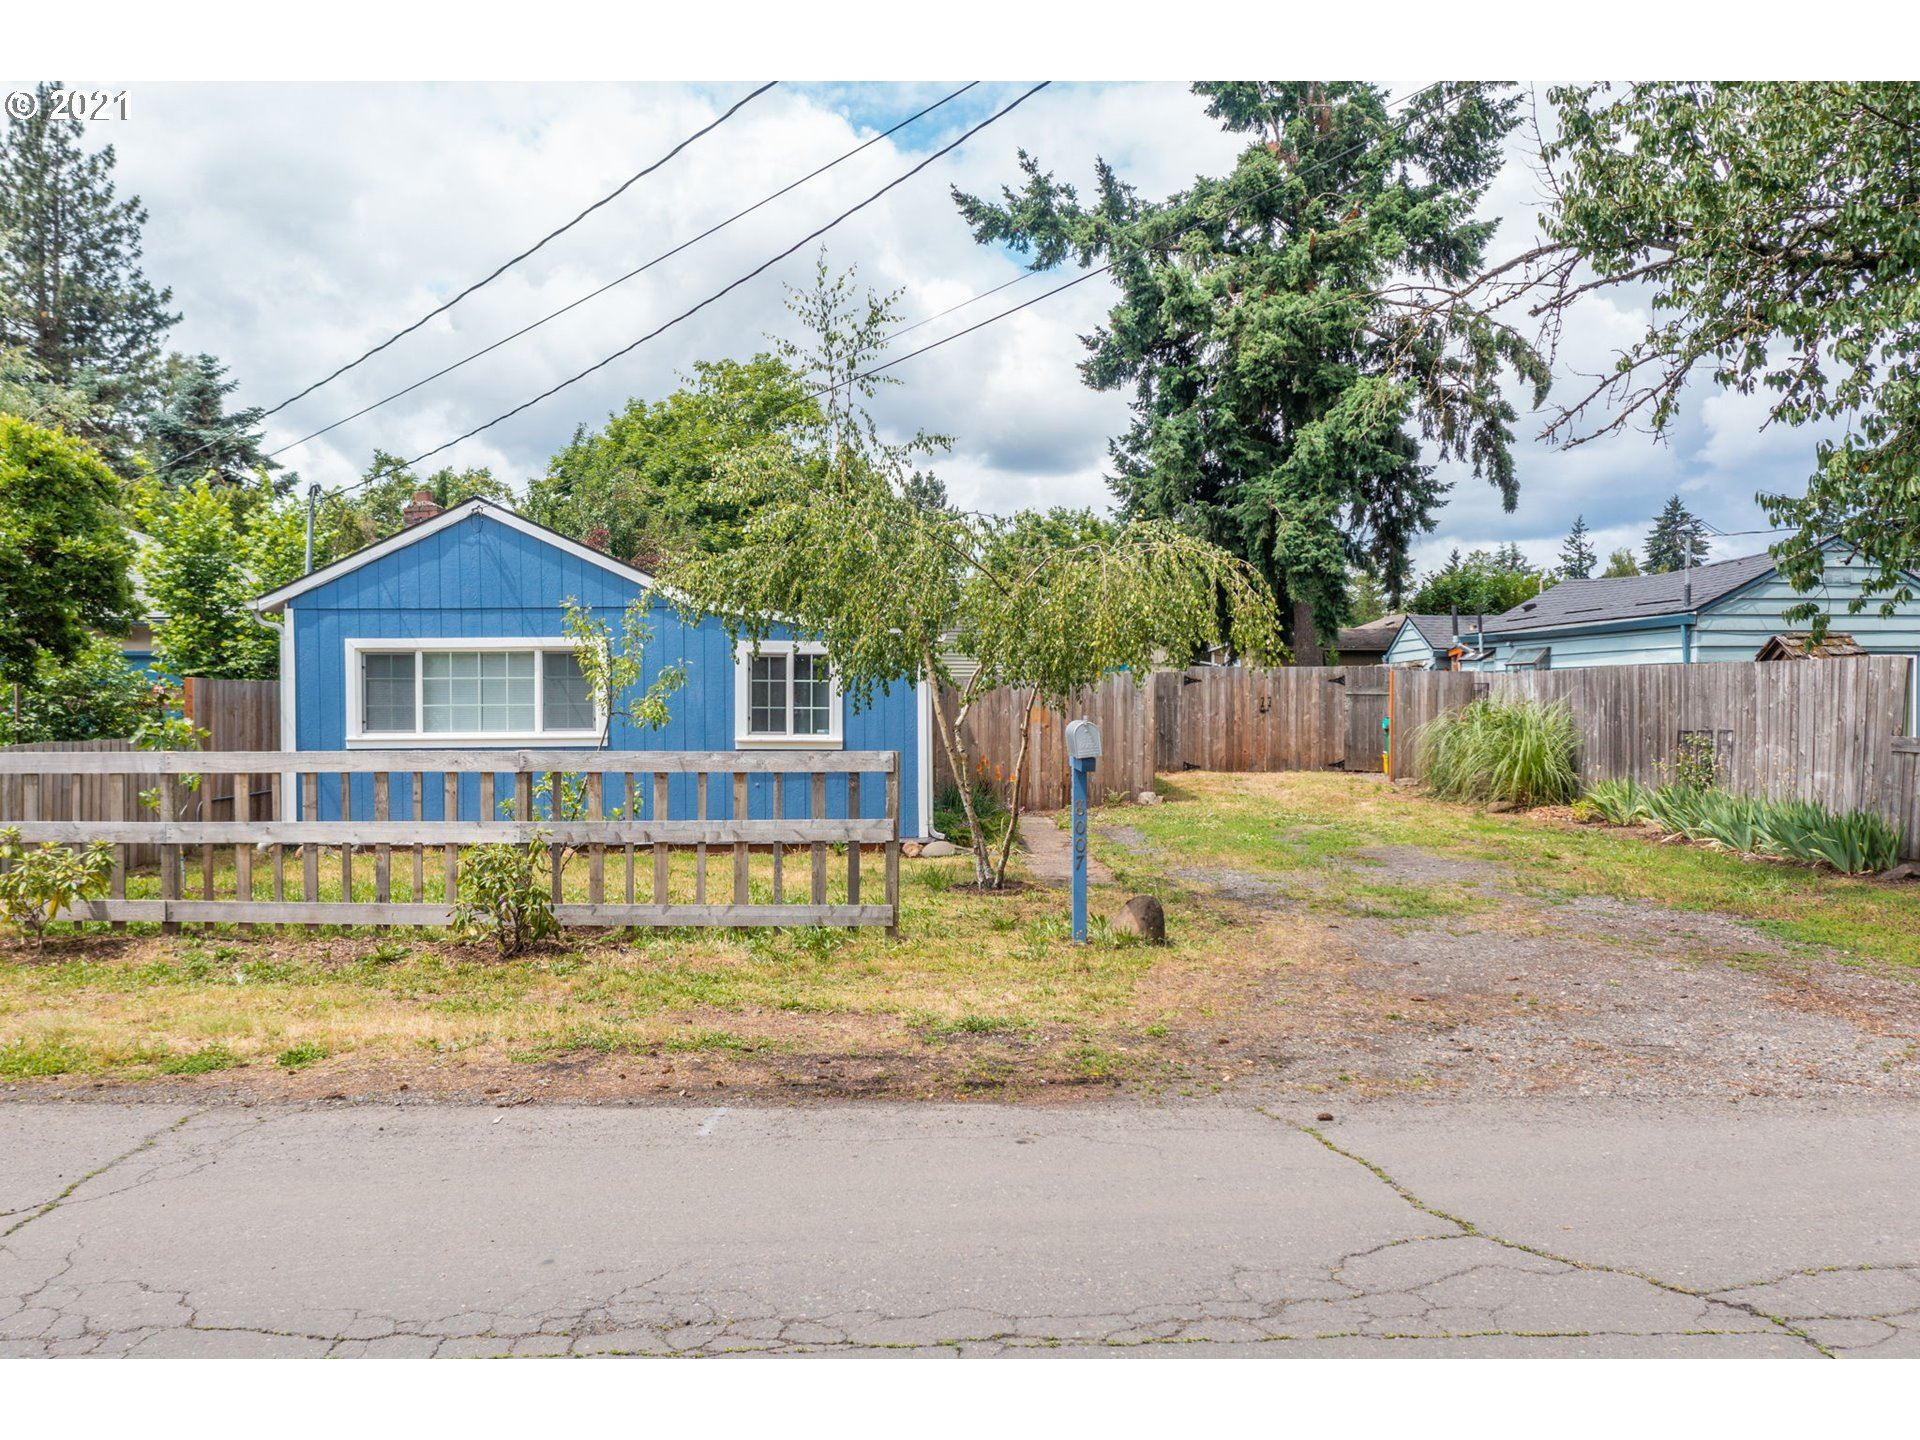 8007 SE 65TH AVE, Portland, OR 97206 - MLS#: 21059999